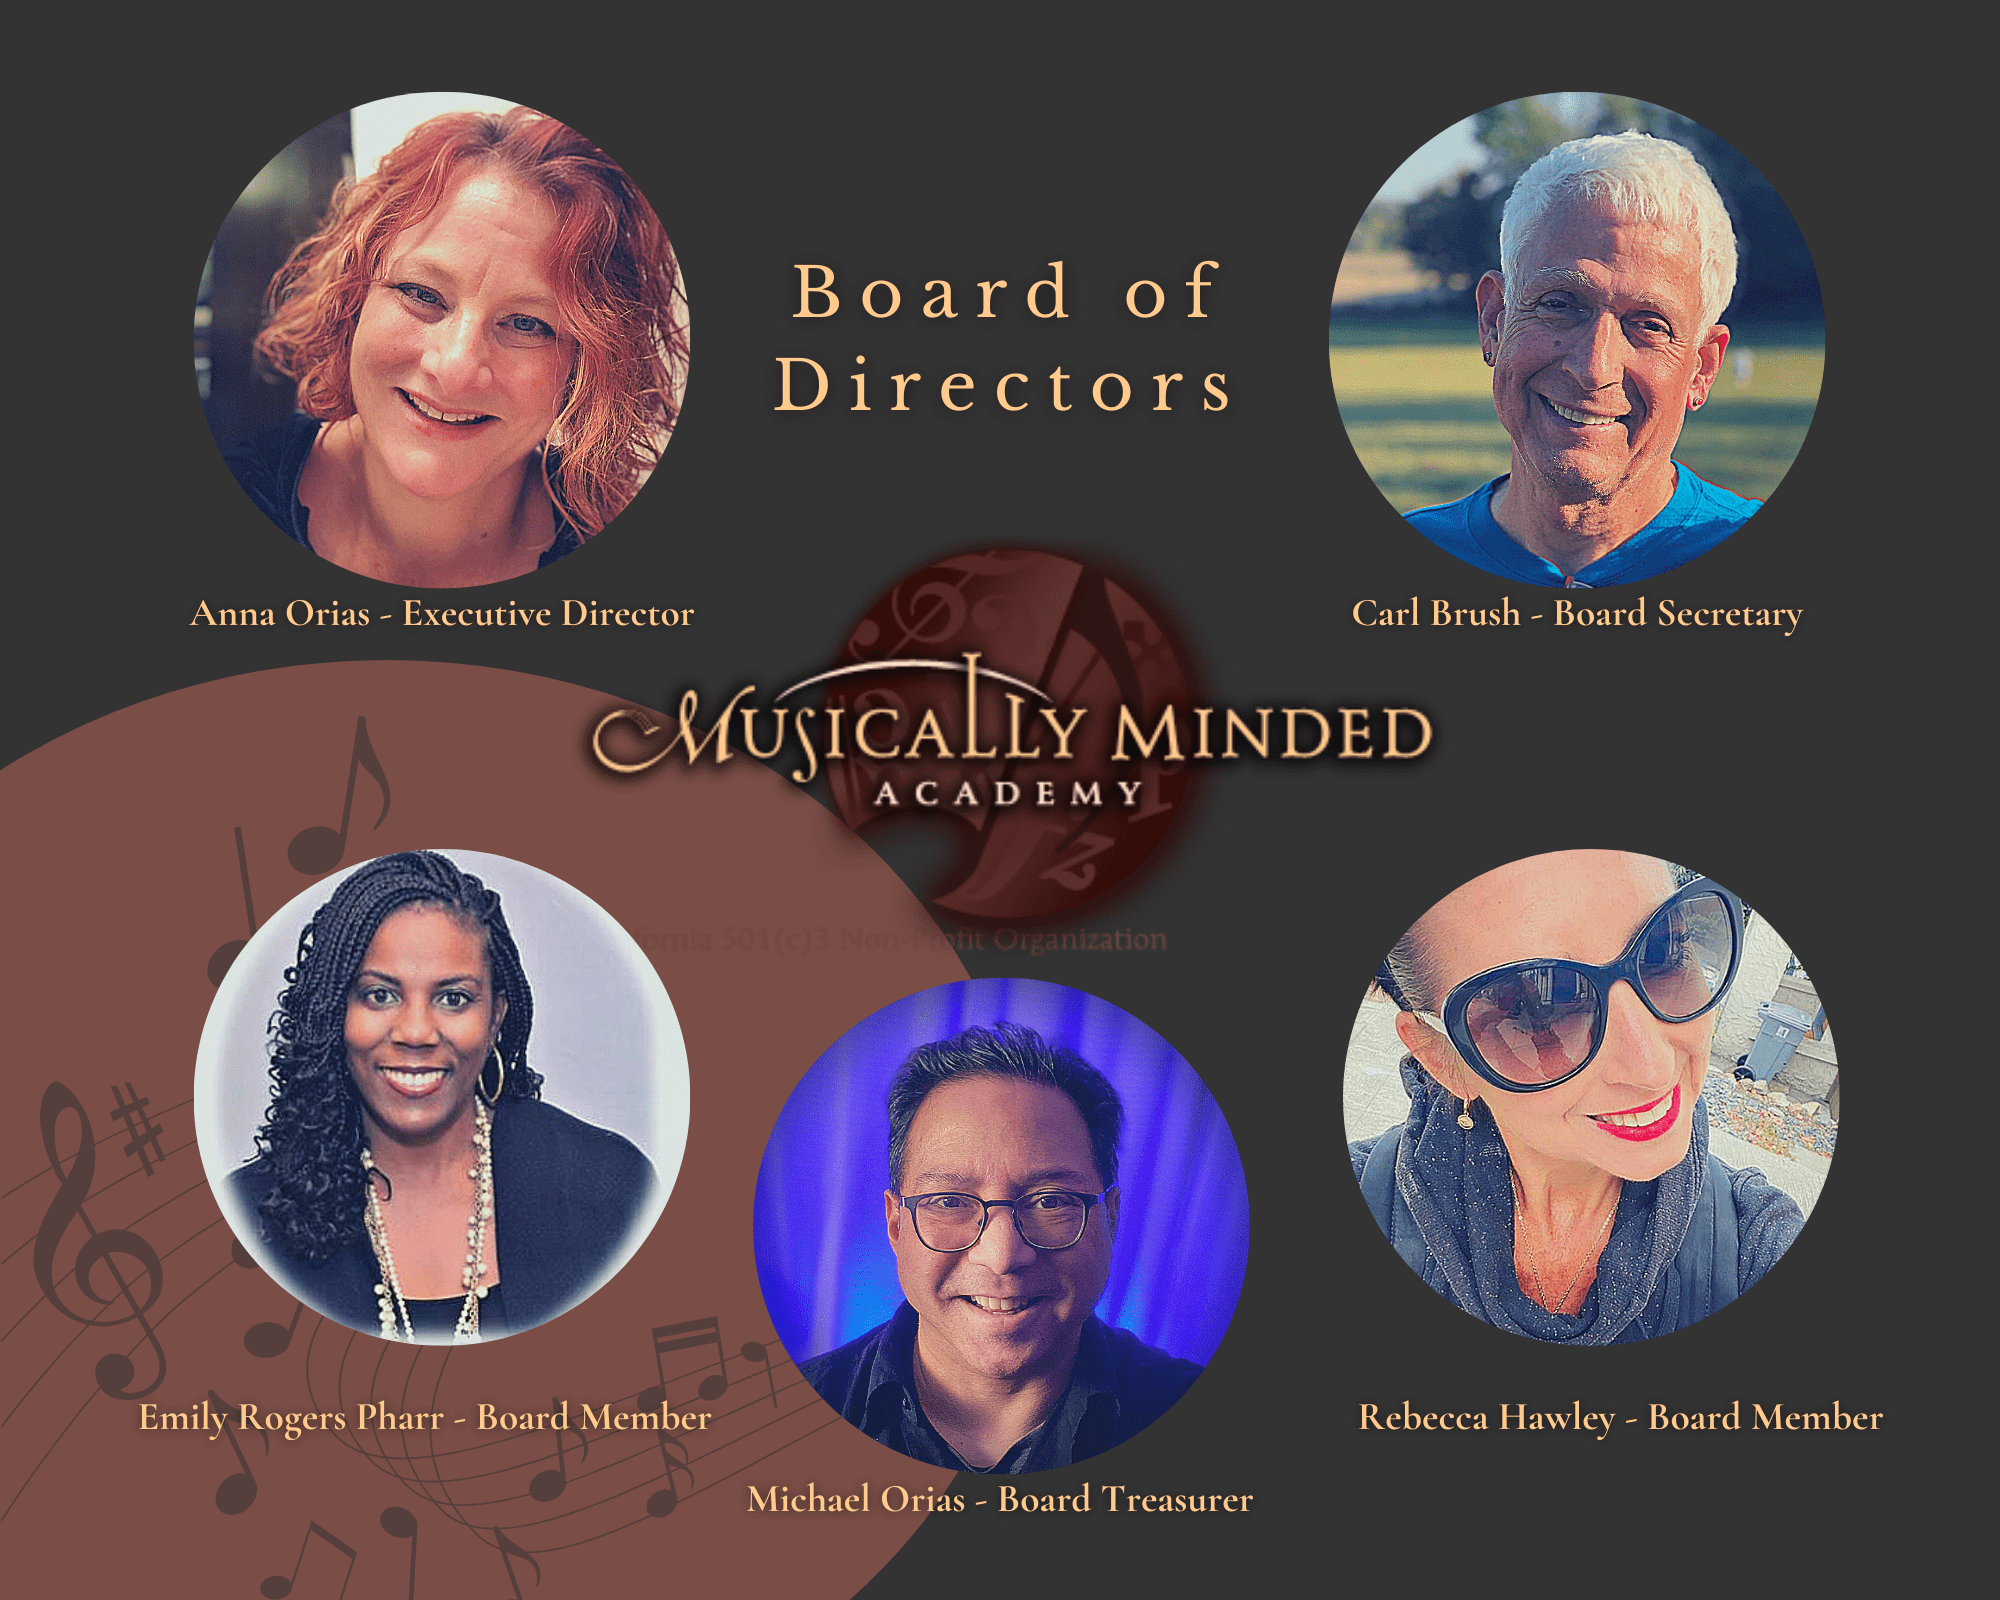 Our Board of Directors